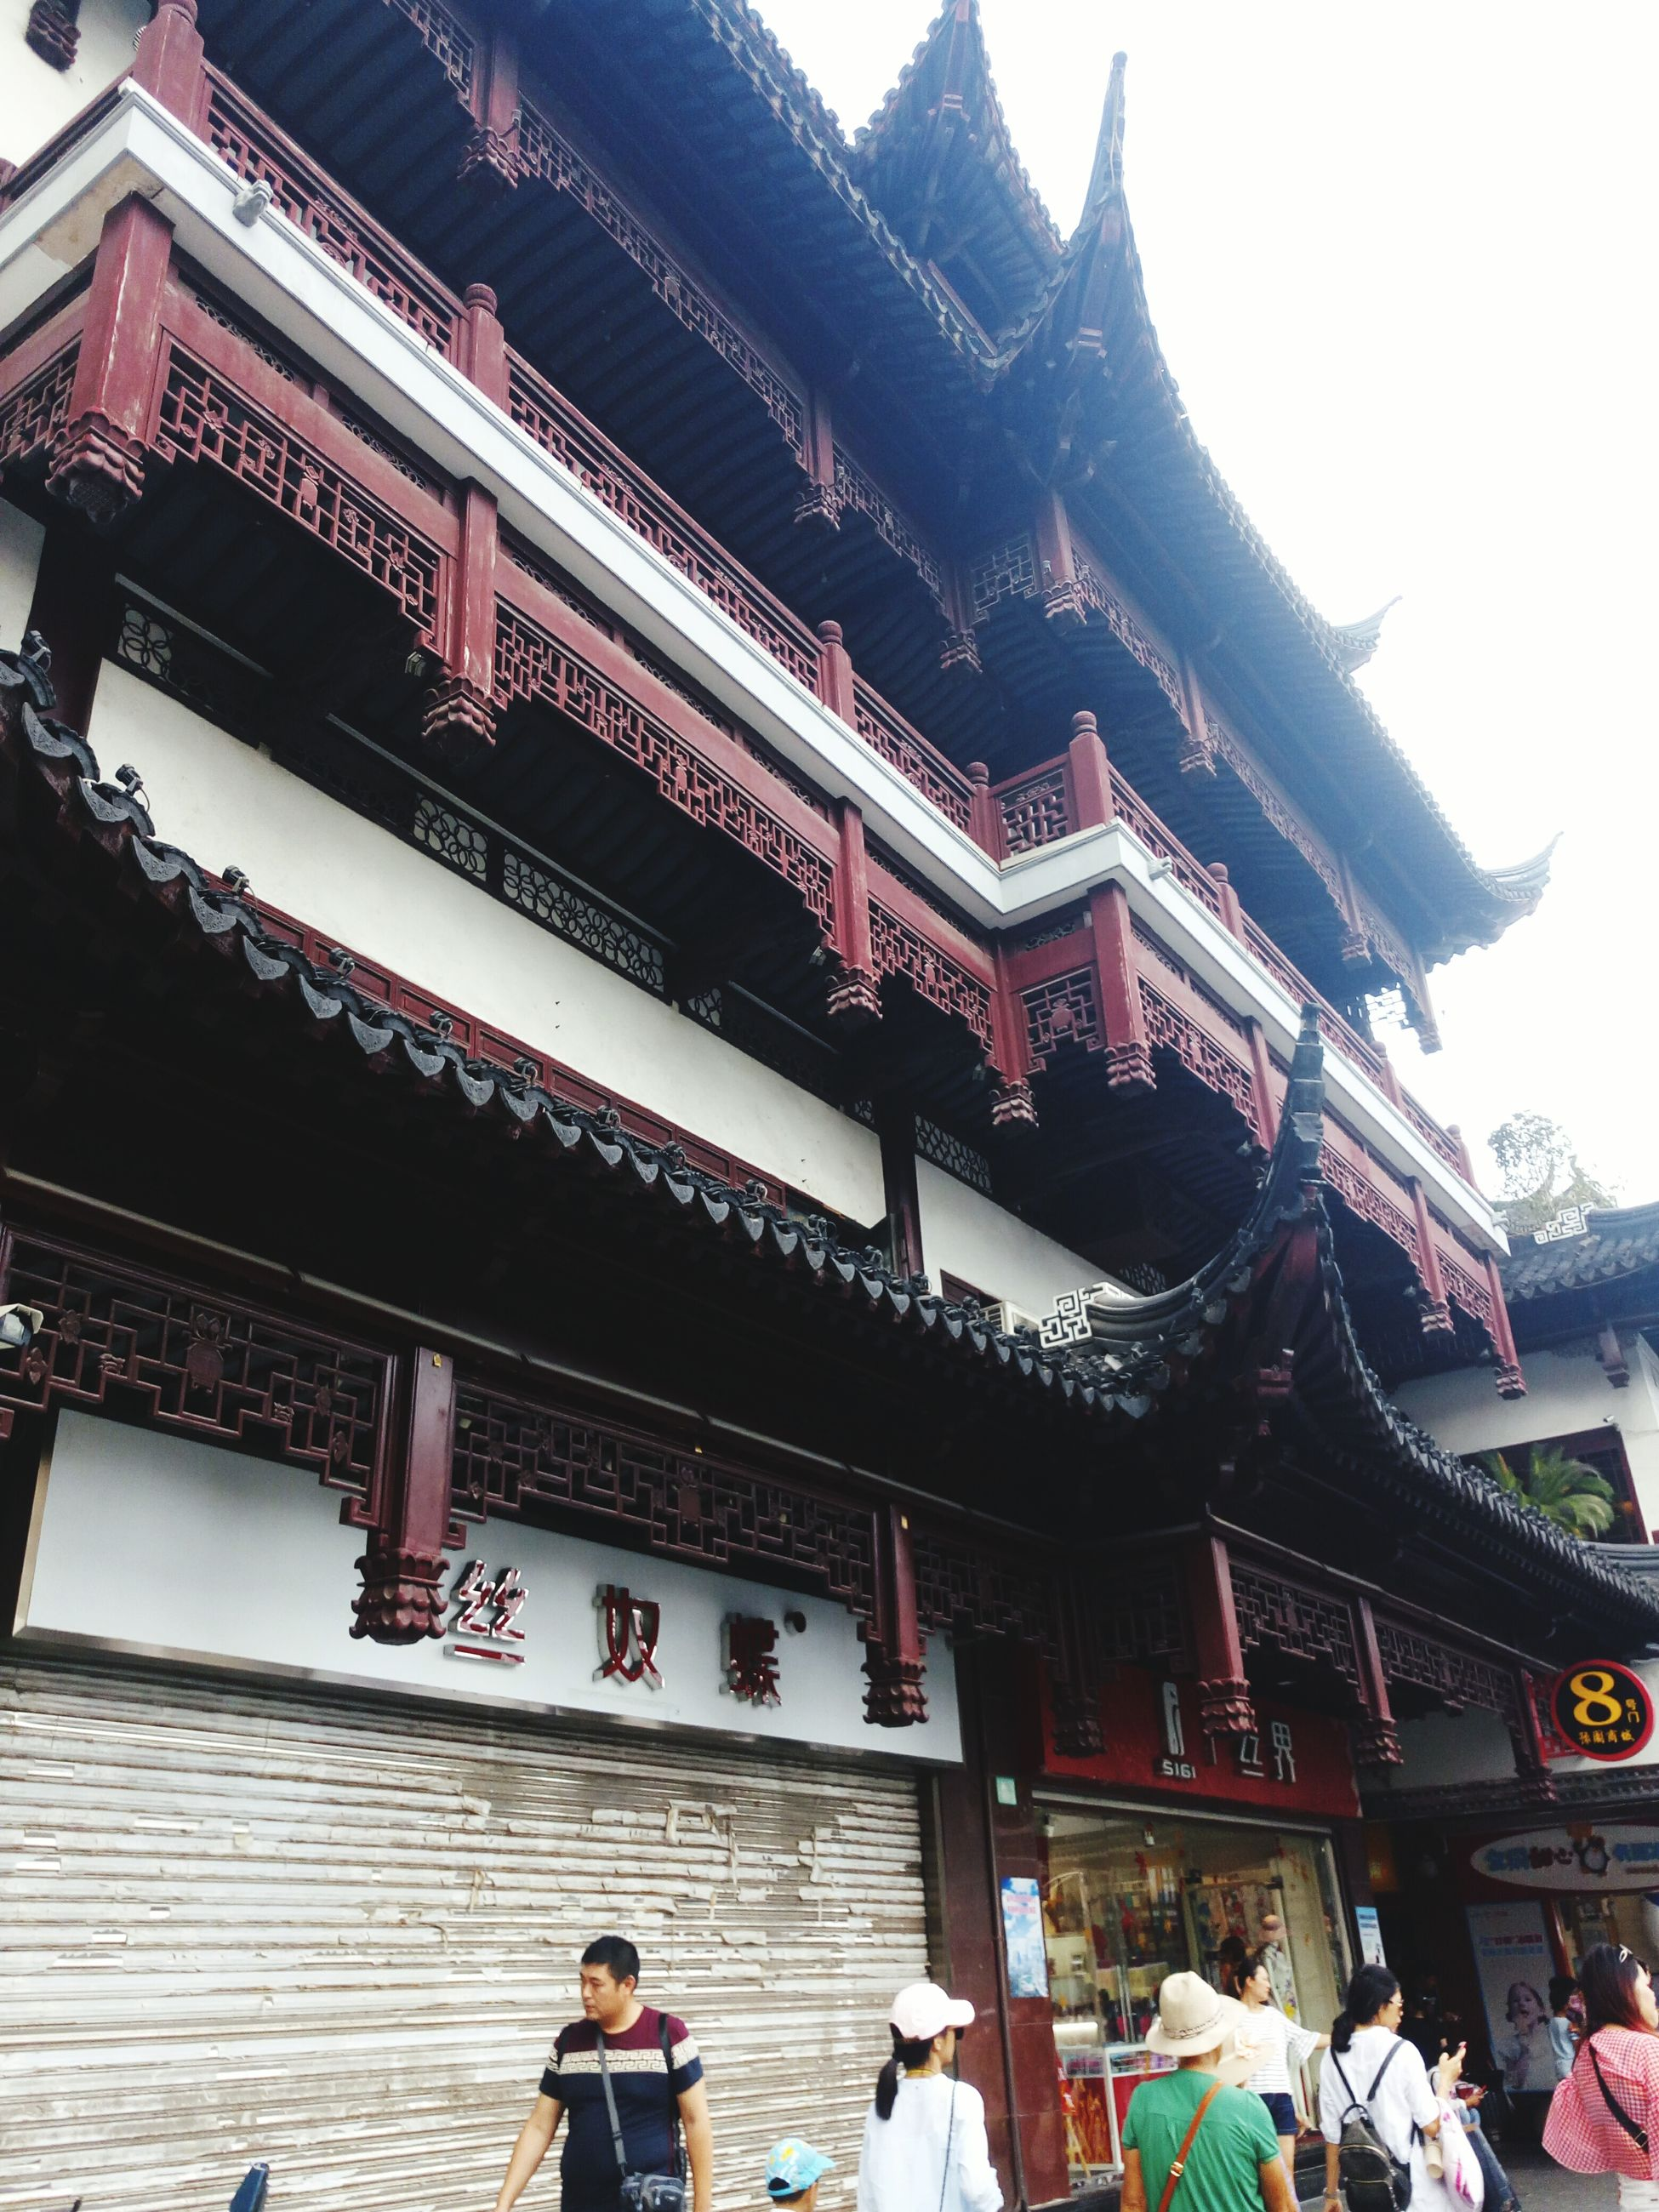 building exterior, architecture, built structure, spirituality, religion, place of worship, lifestyles, temple - building, low angle view, leisure activity, pagoda, culture, famous place, city, outdoors, tourism, person, architectural feature, day, sky, in front of, facade